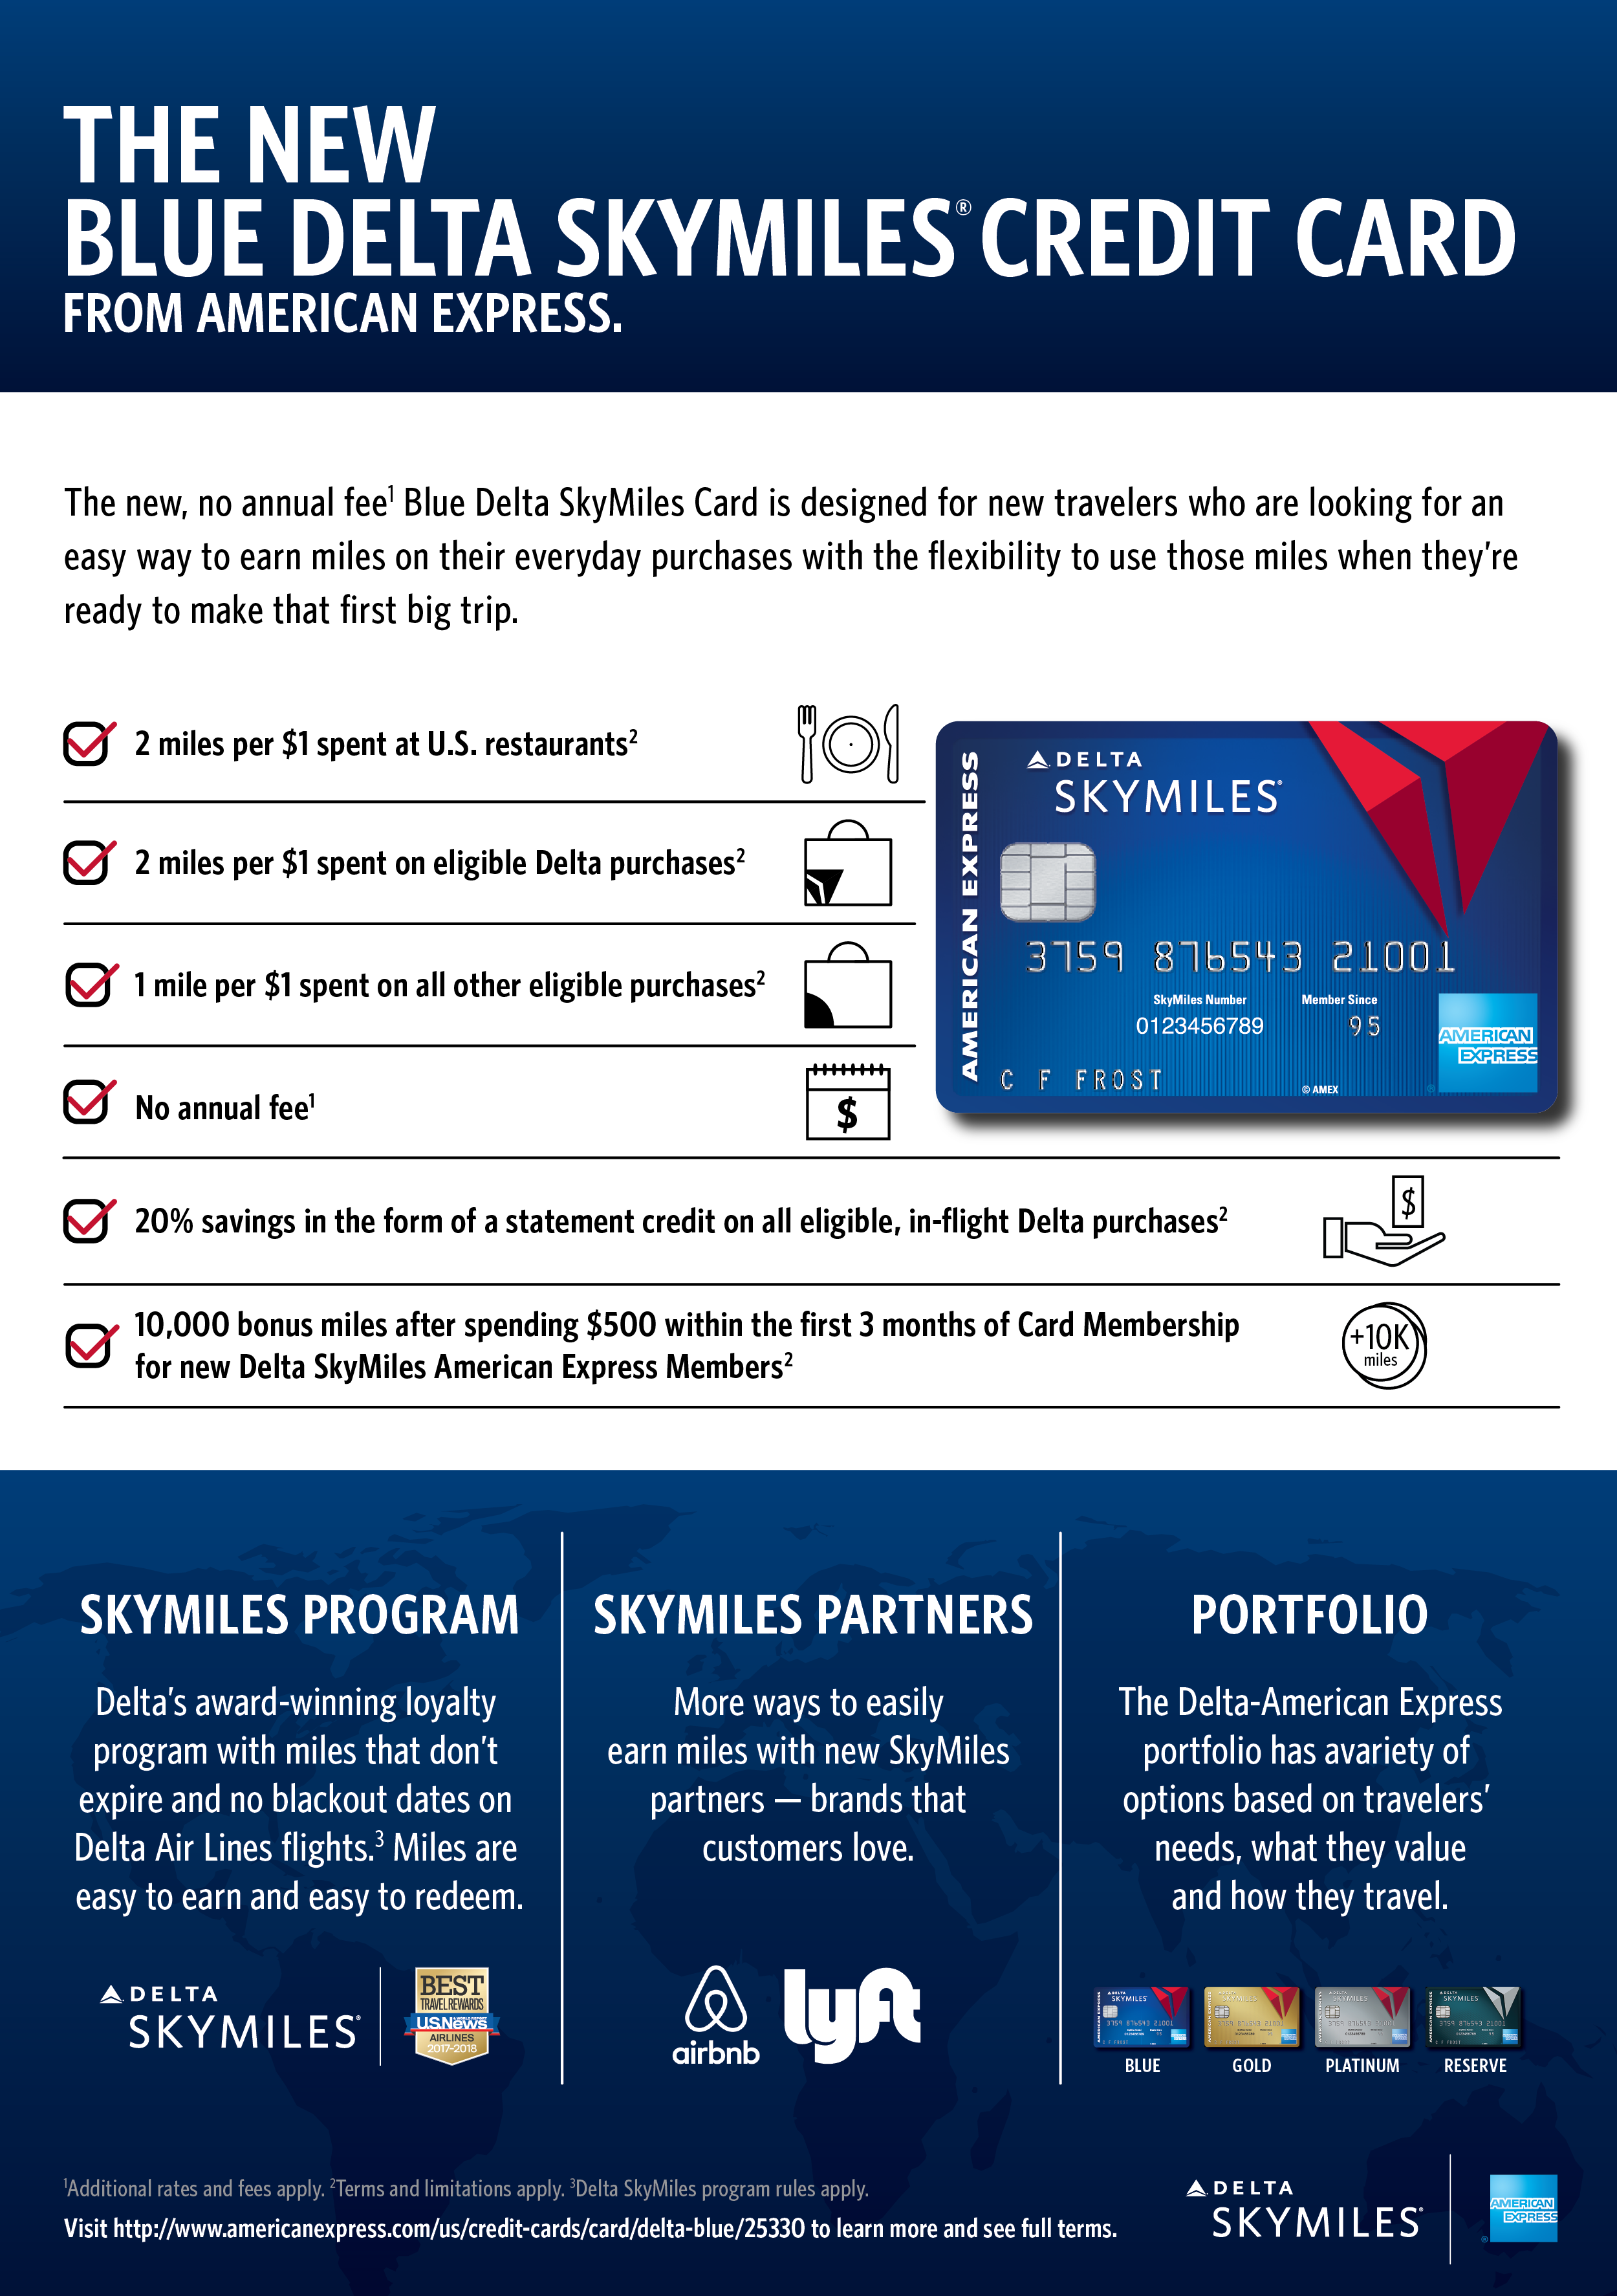 American Express and Delta serve up new, no annual fee Blue Delta ...